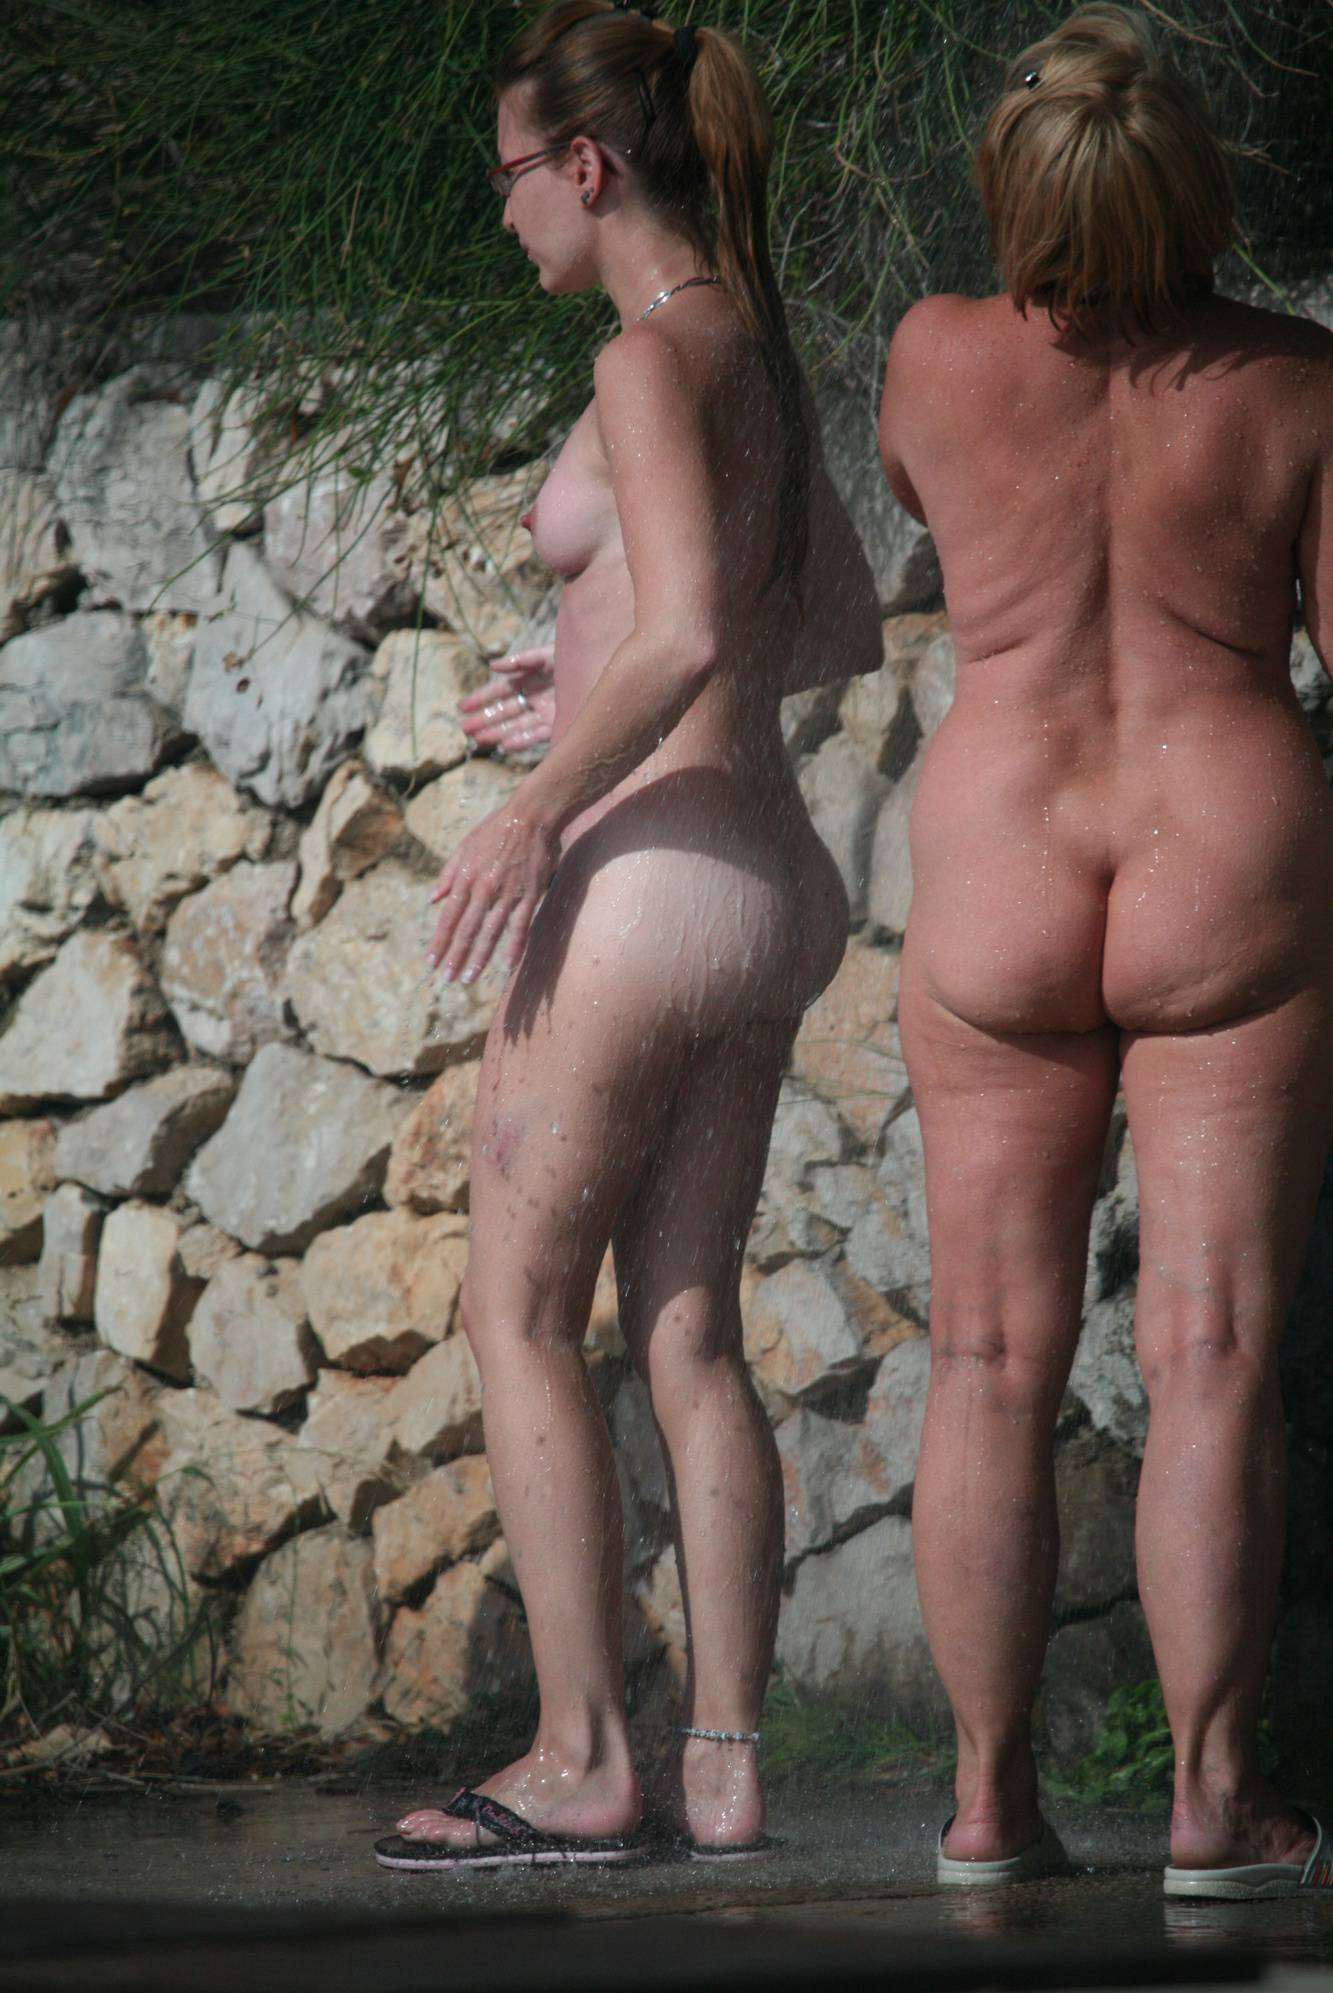 Nudist Pictures Shower-Wall Girl Family - 2